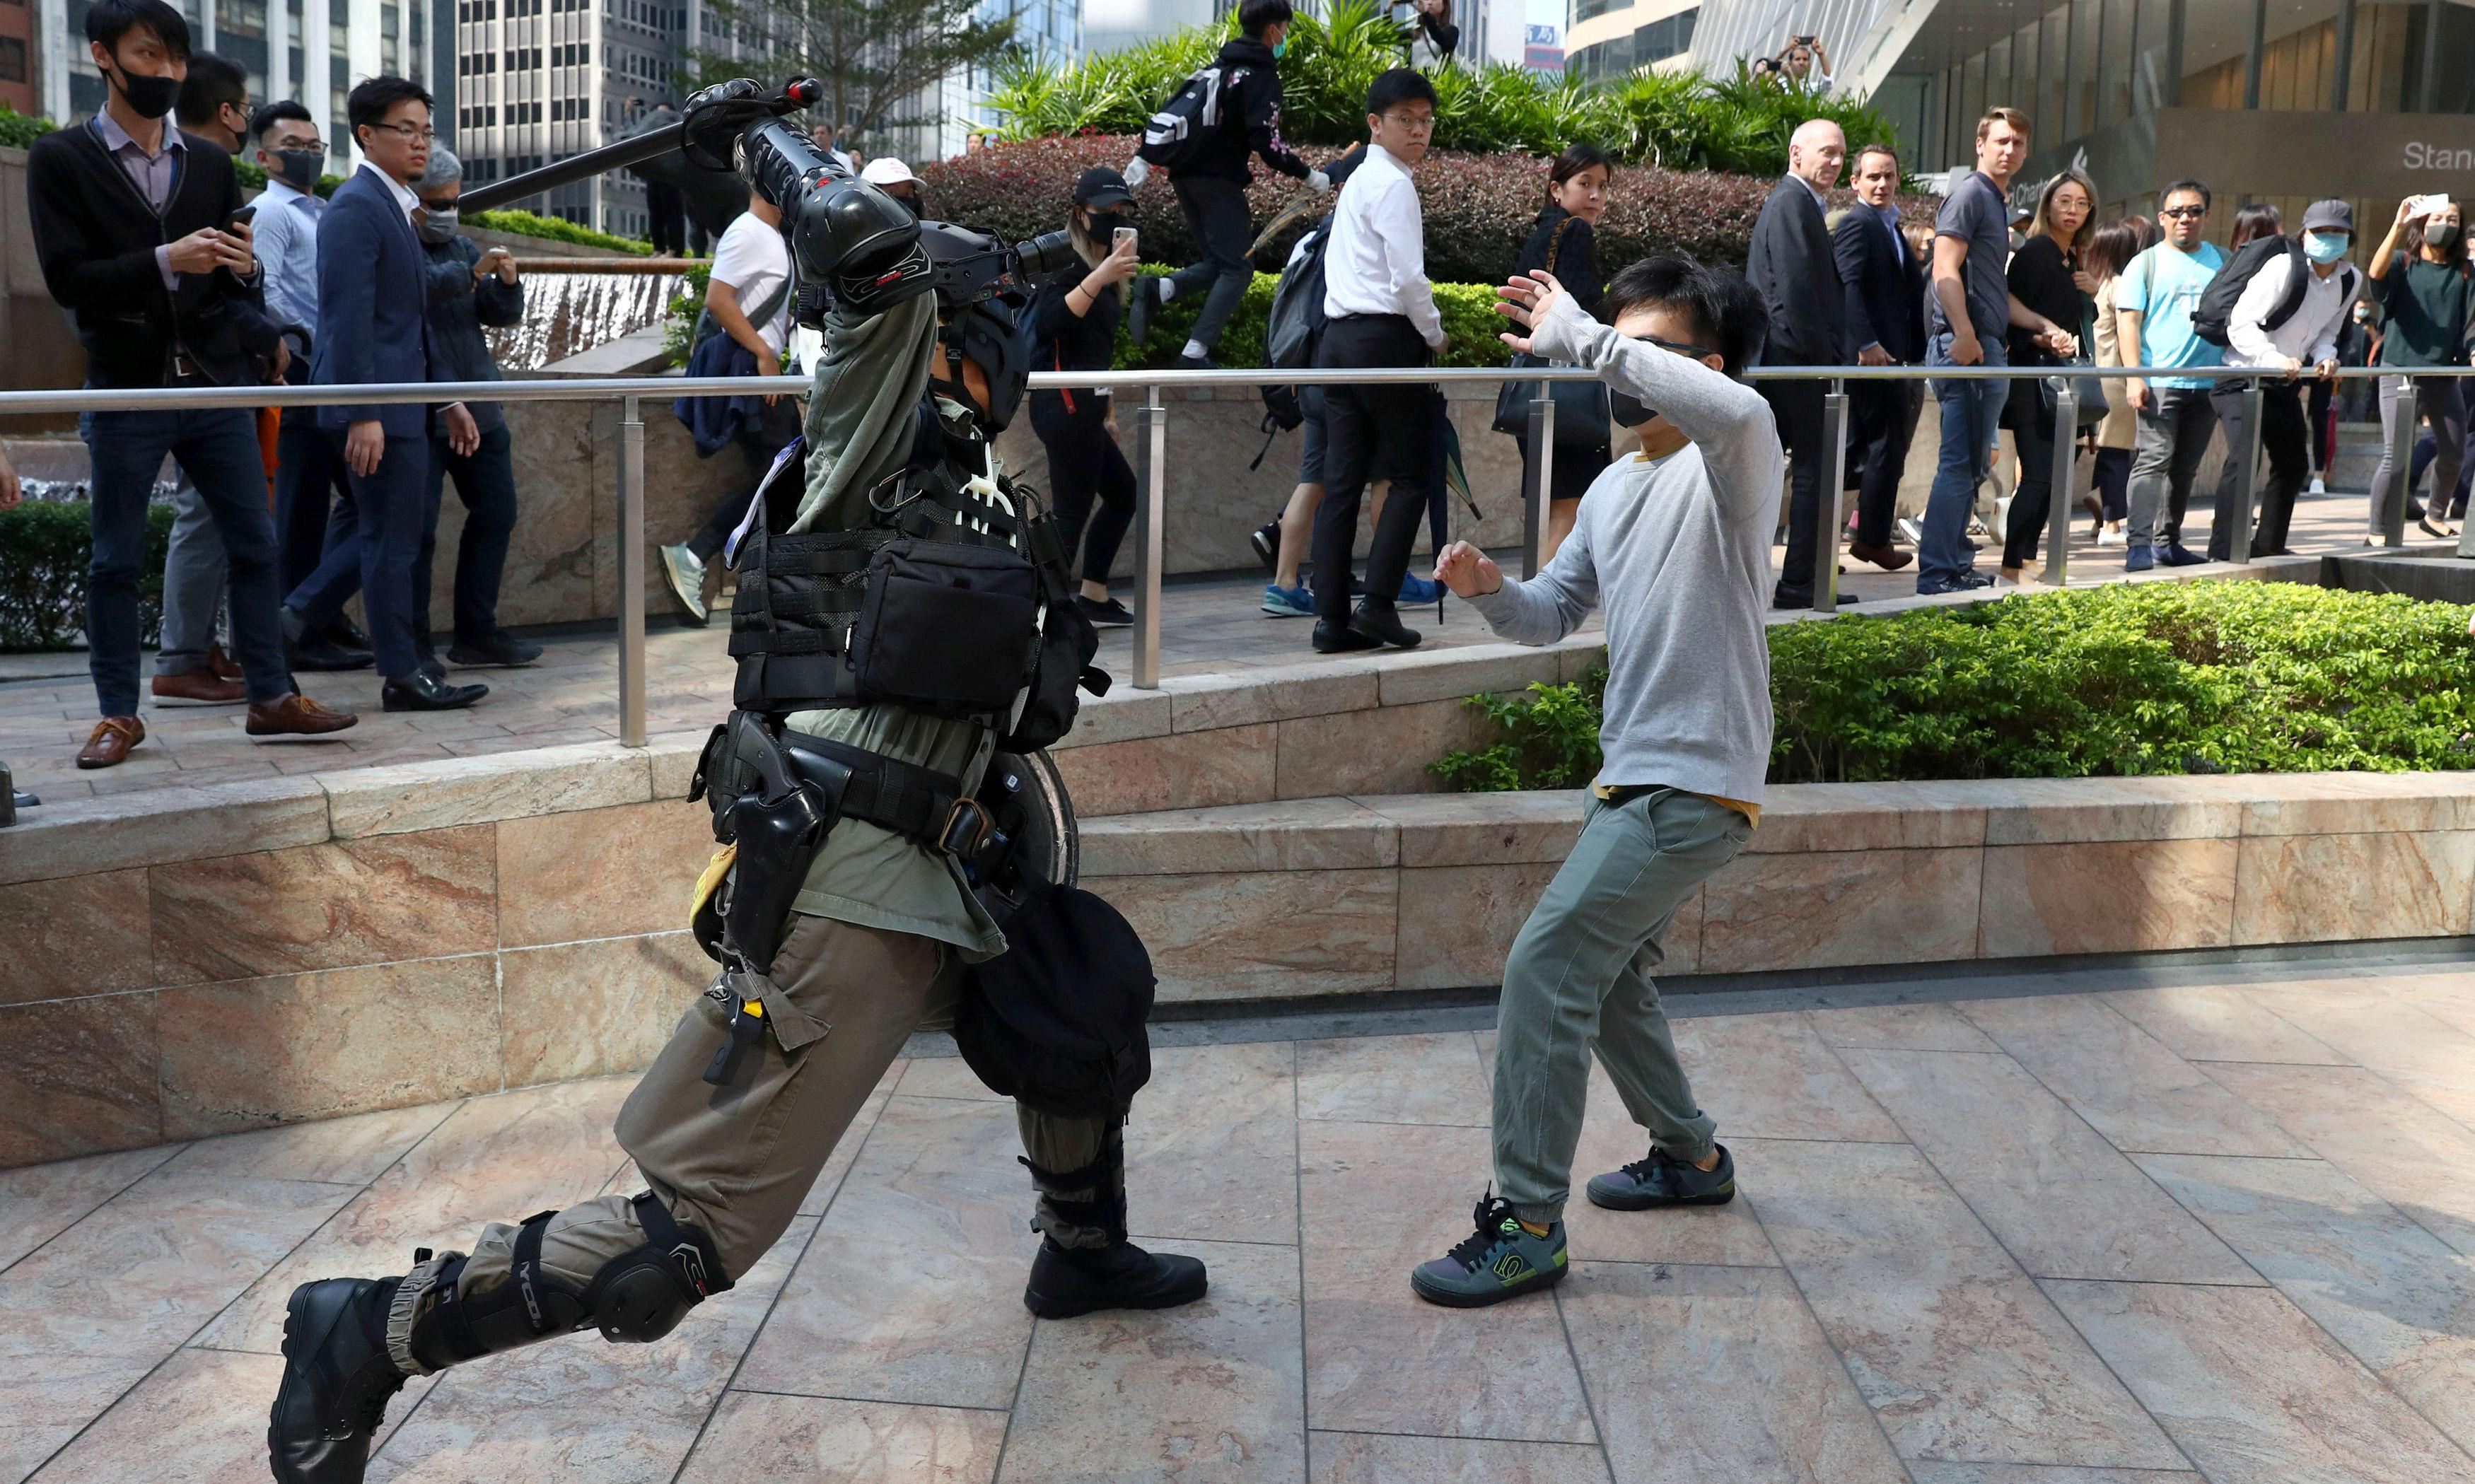 Hong Kong in chaos as protesters gather at universities with bows and arrows